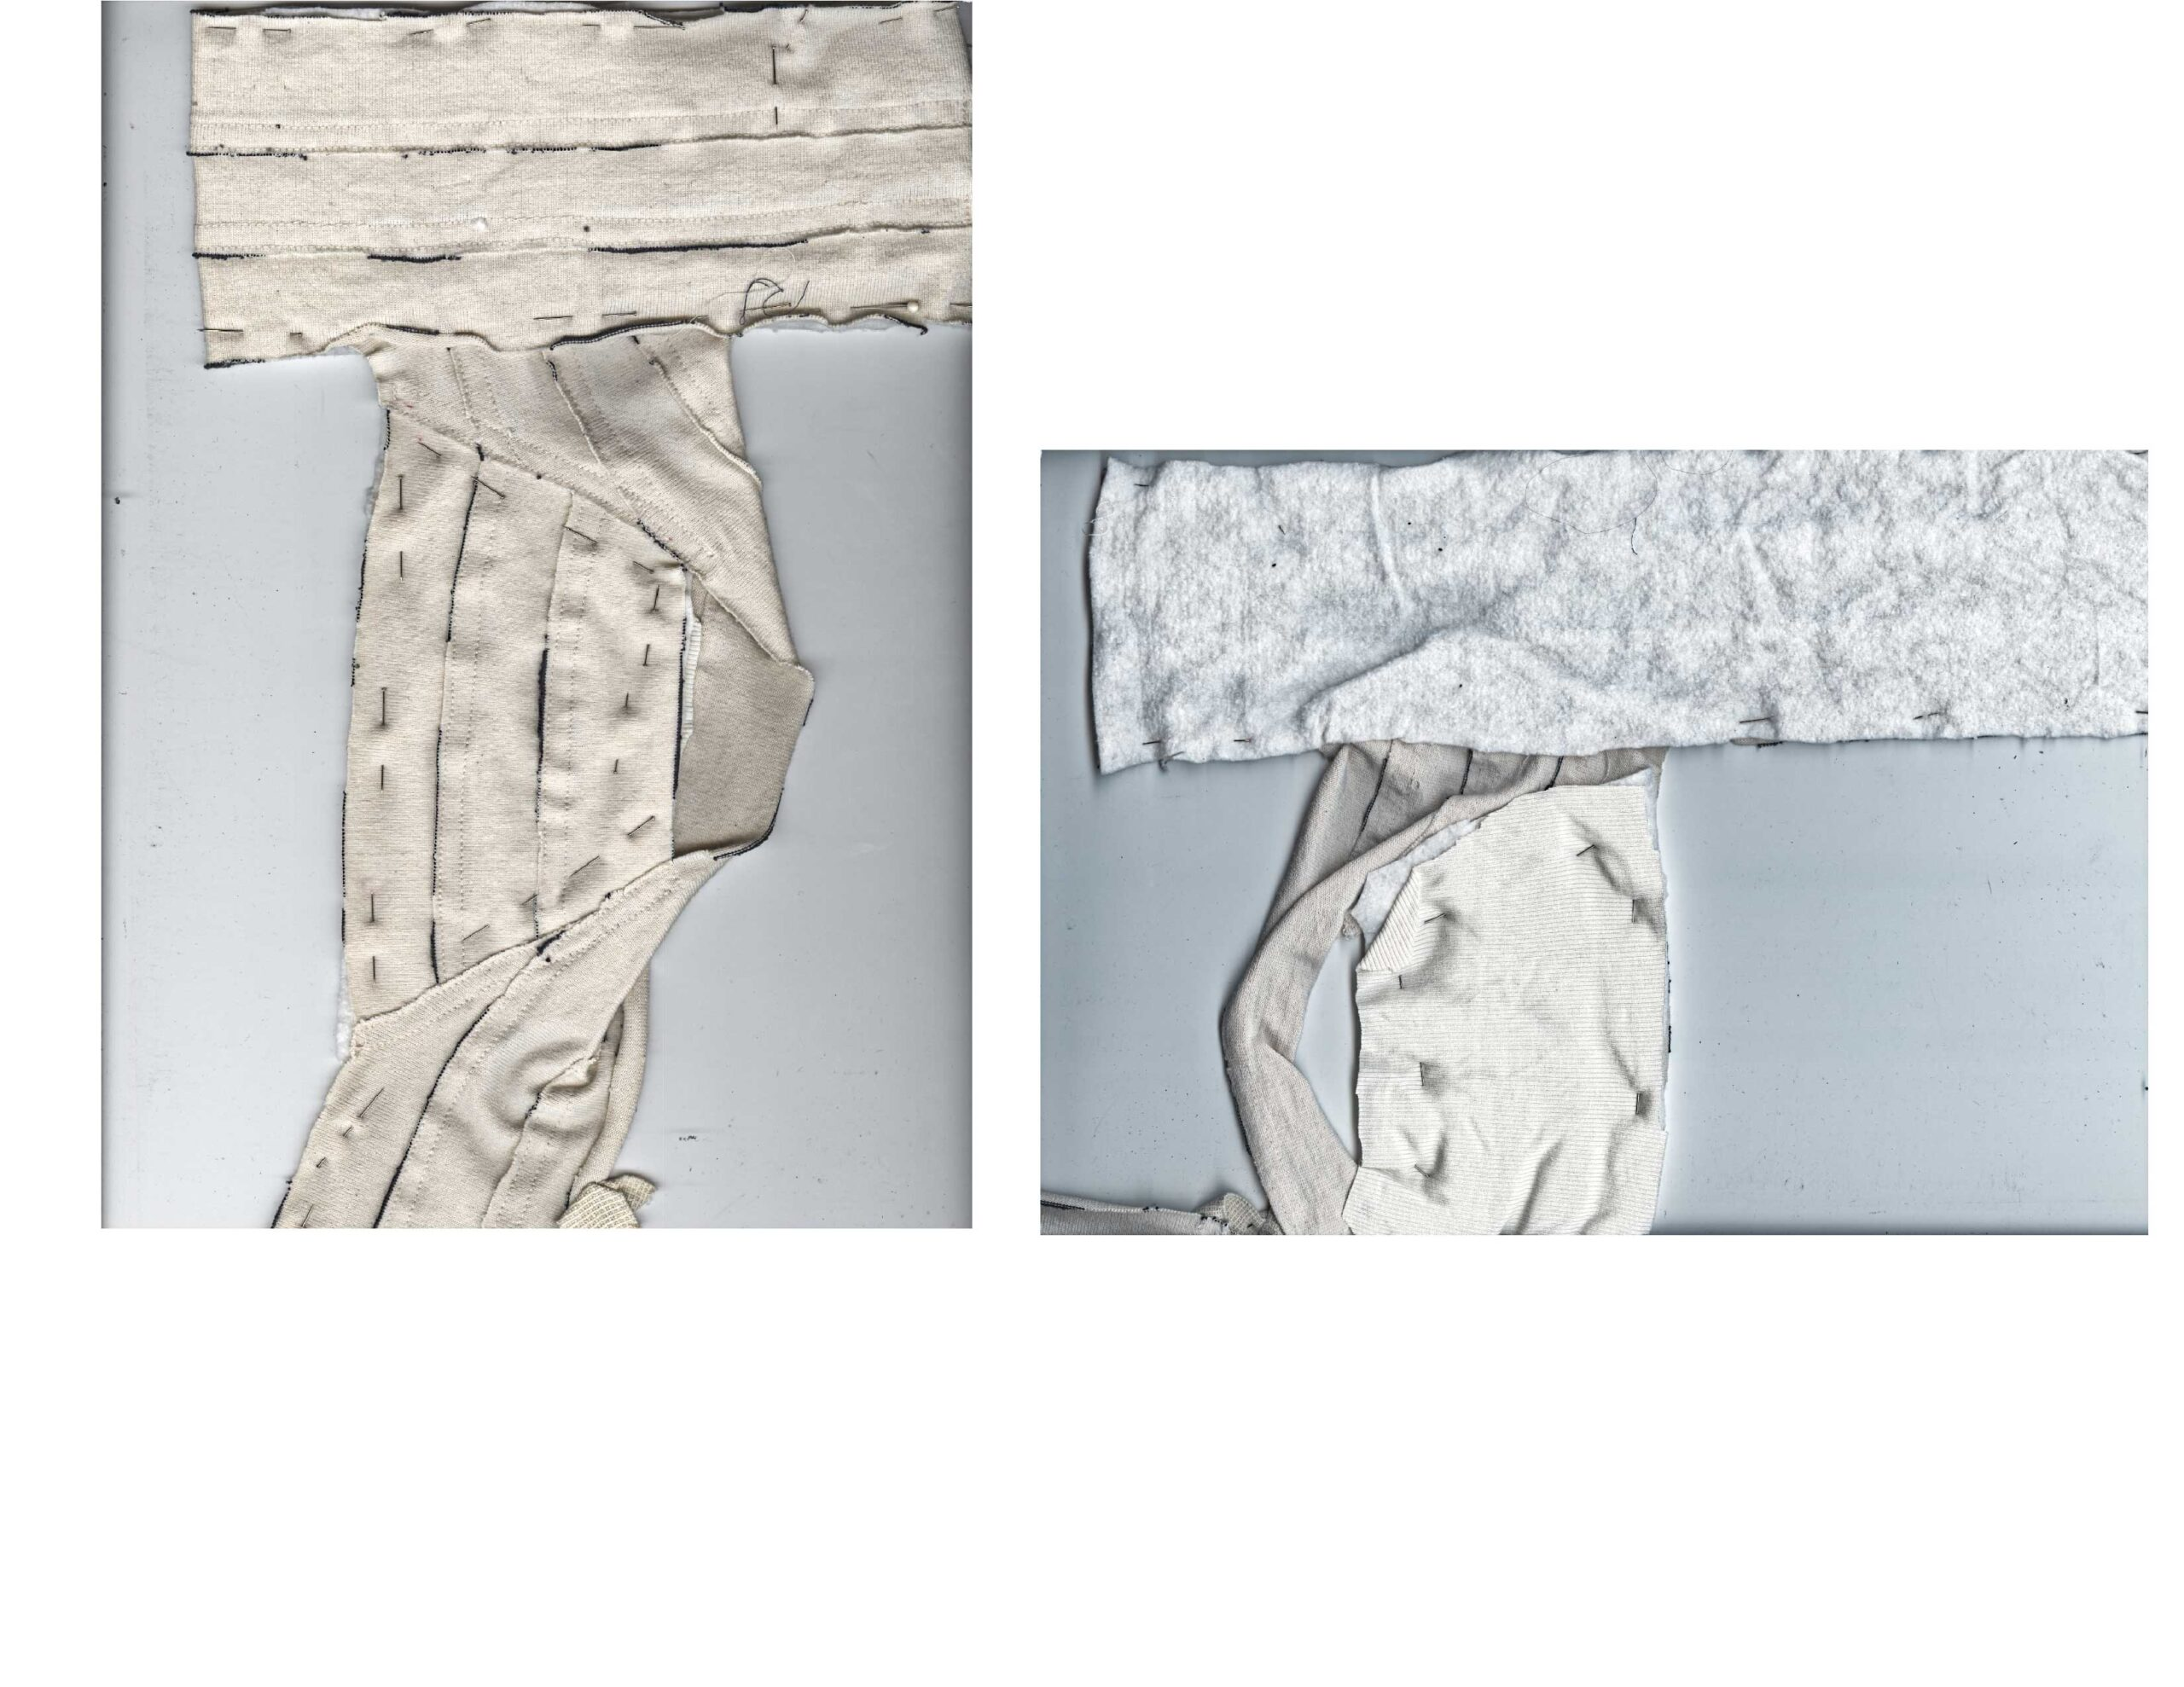 Reconstruction - Layers - by Tricia Crivellaro